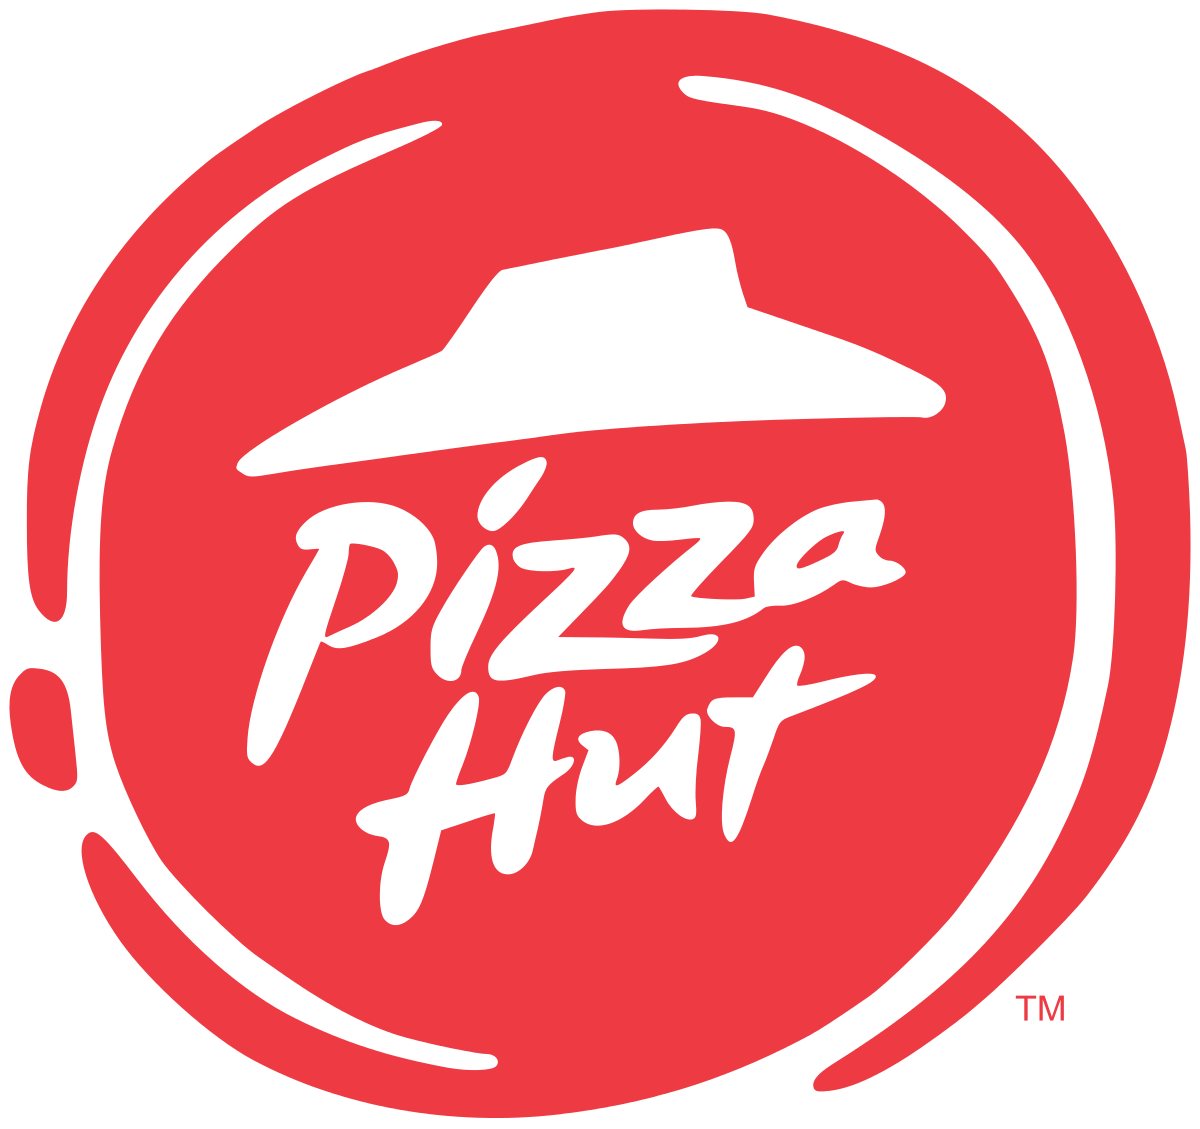 Pizza Hut (Broadway)